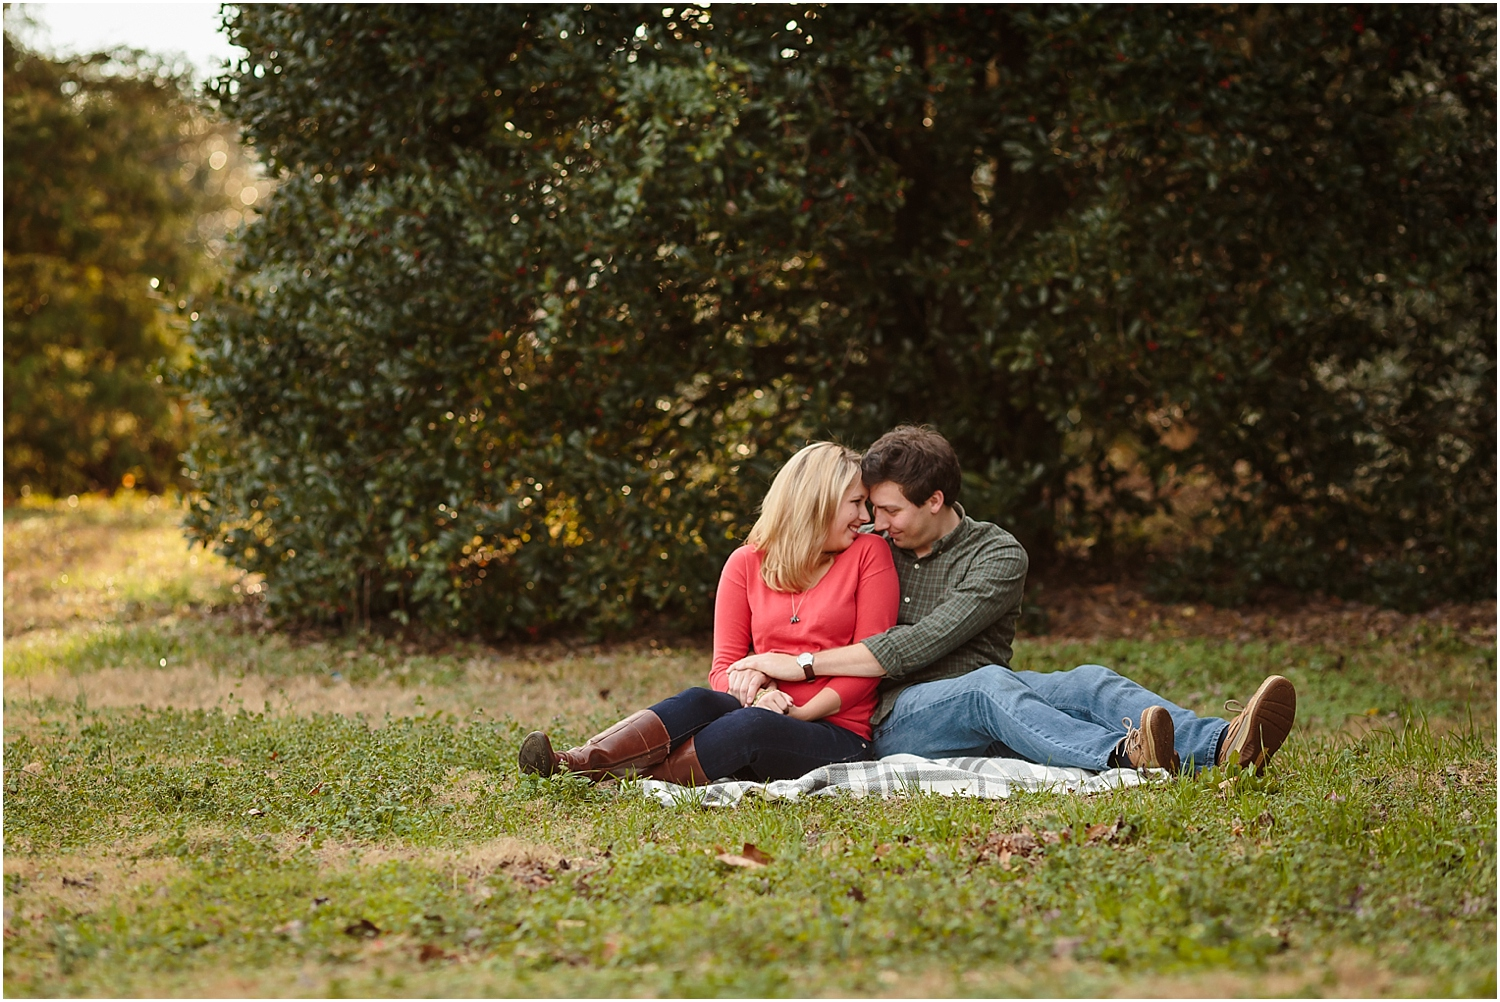 141207--9677clemson-engagement-shoot_blog.jpg